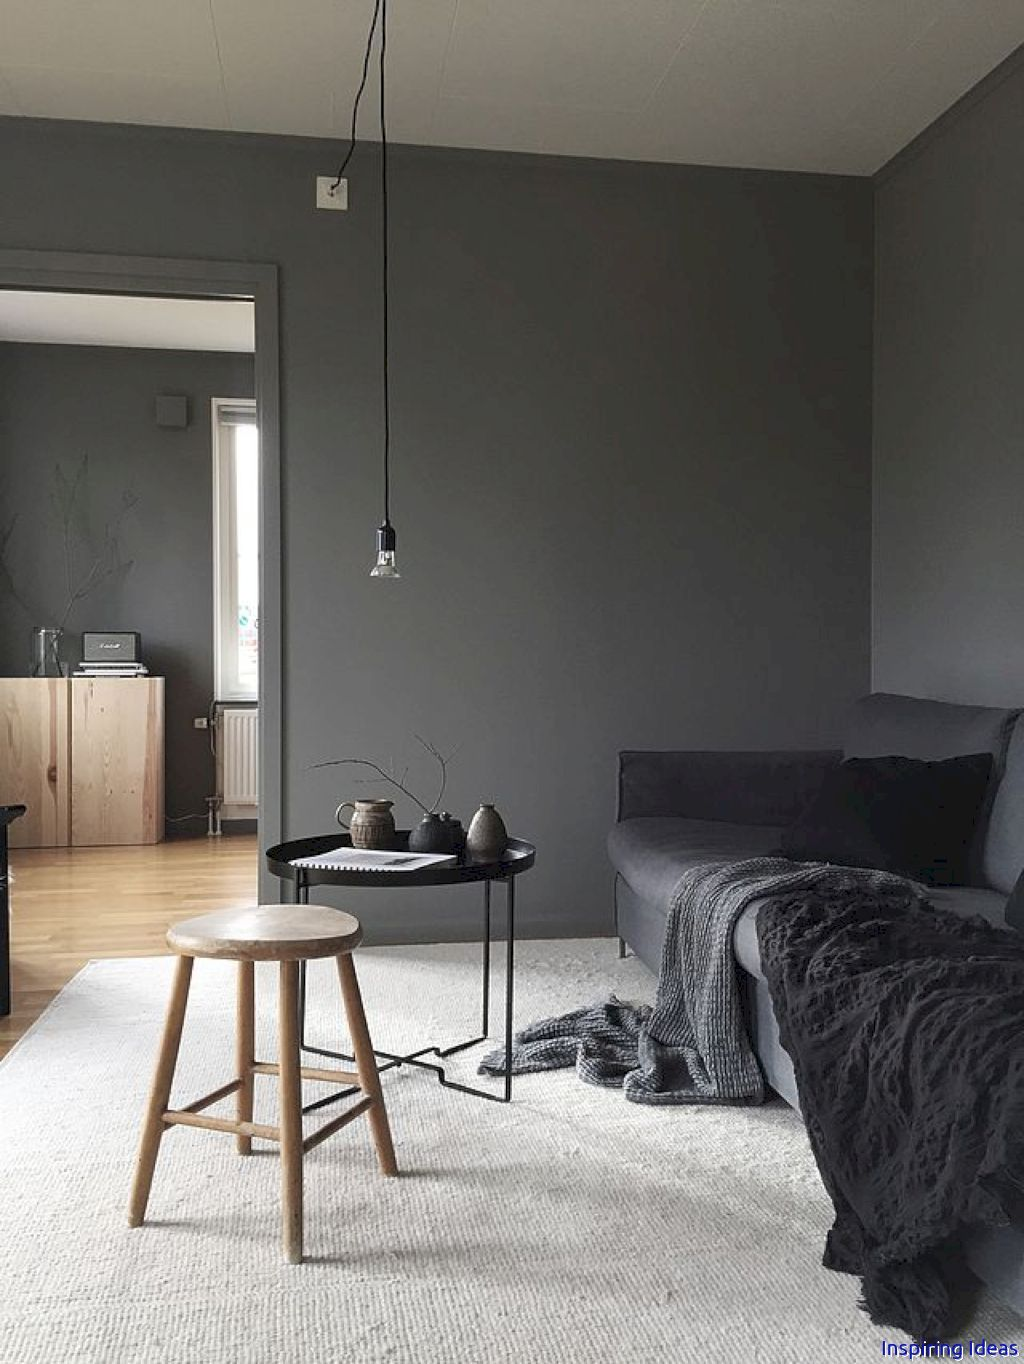 Adorable 47 Great Apartment Decorating Ideas for Men ://lovelyving.com/2017/11/02/47-great-apartment-decorating-ideas-men/ & 47 Great Apartment Decorating Ideas for Men | Things to get ...